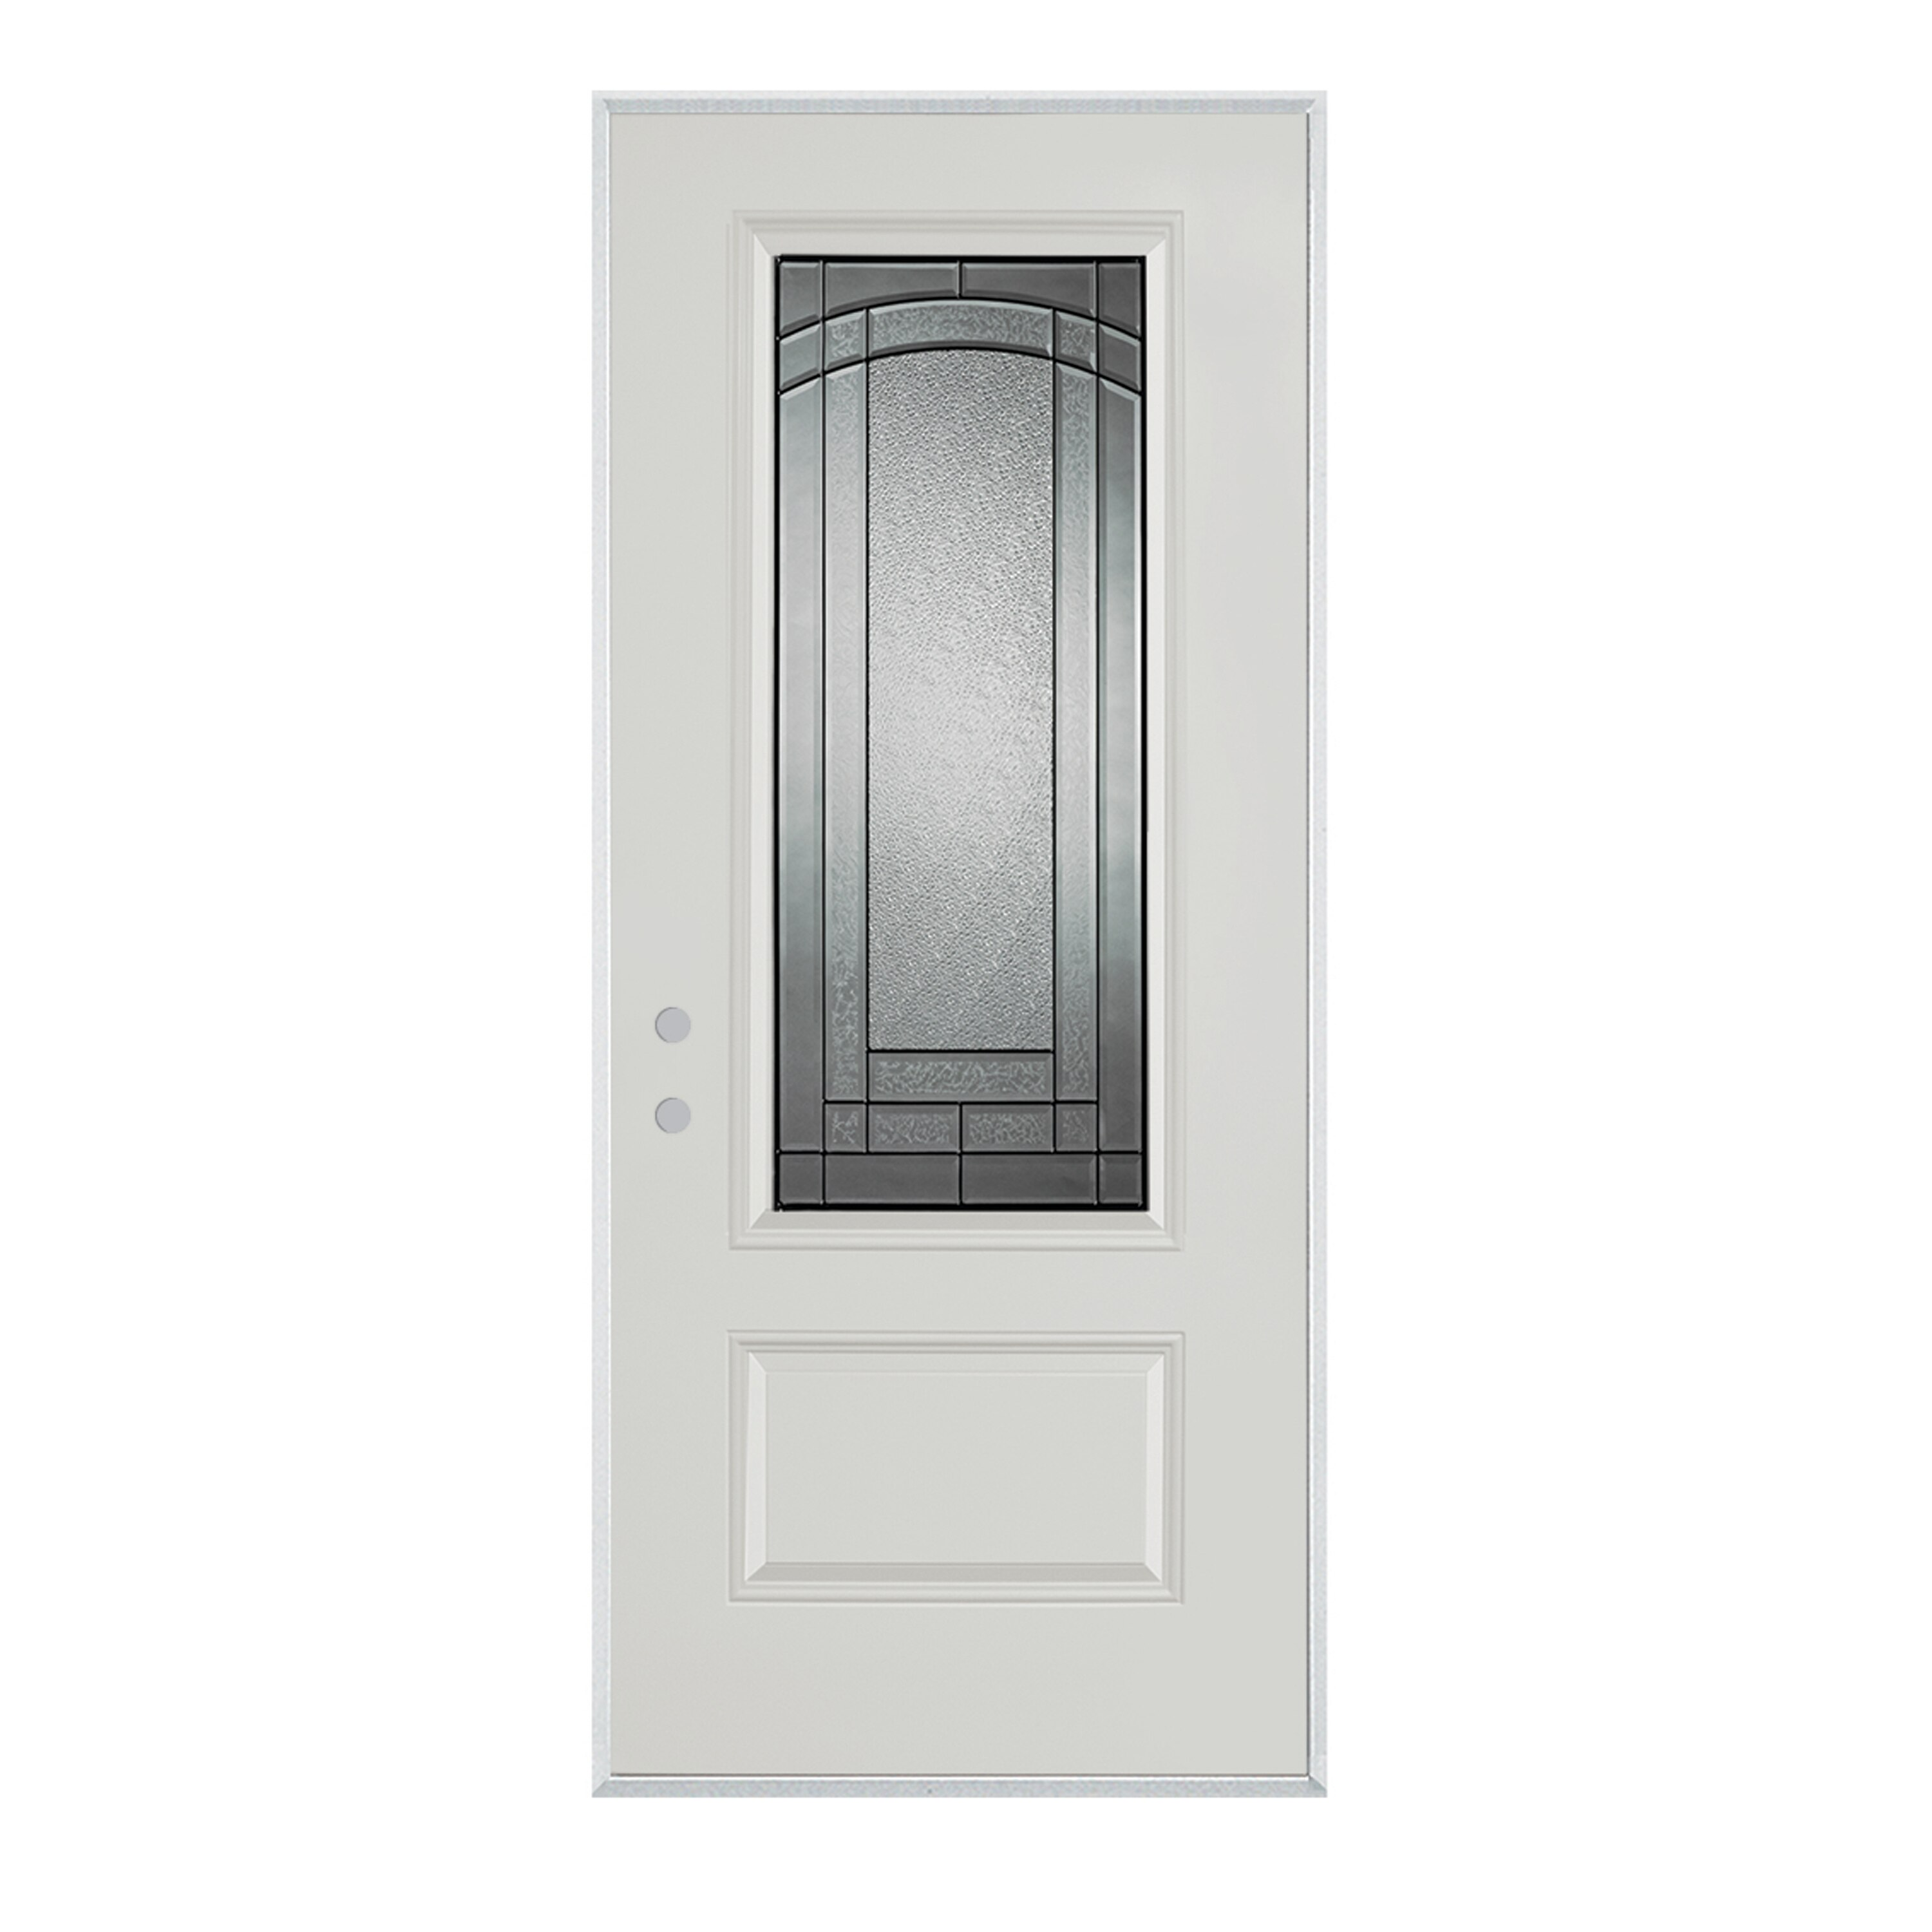 Stanley Tools - Chatham 34 Lite 1Panel Painted Steel Prehung RightHand Entry Door - 1538E-BN-36-R